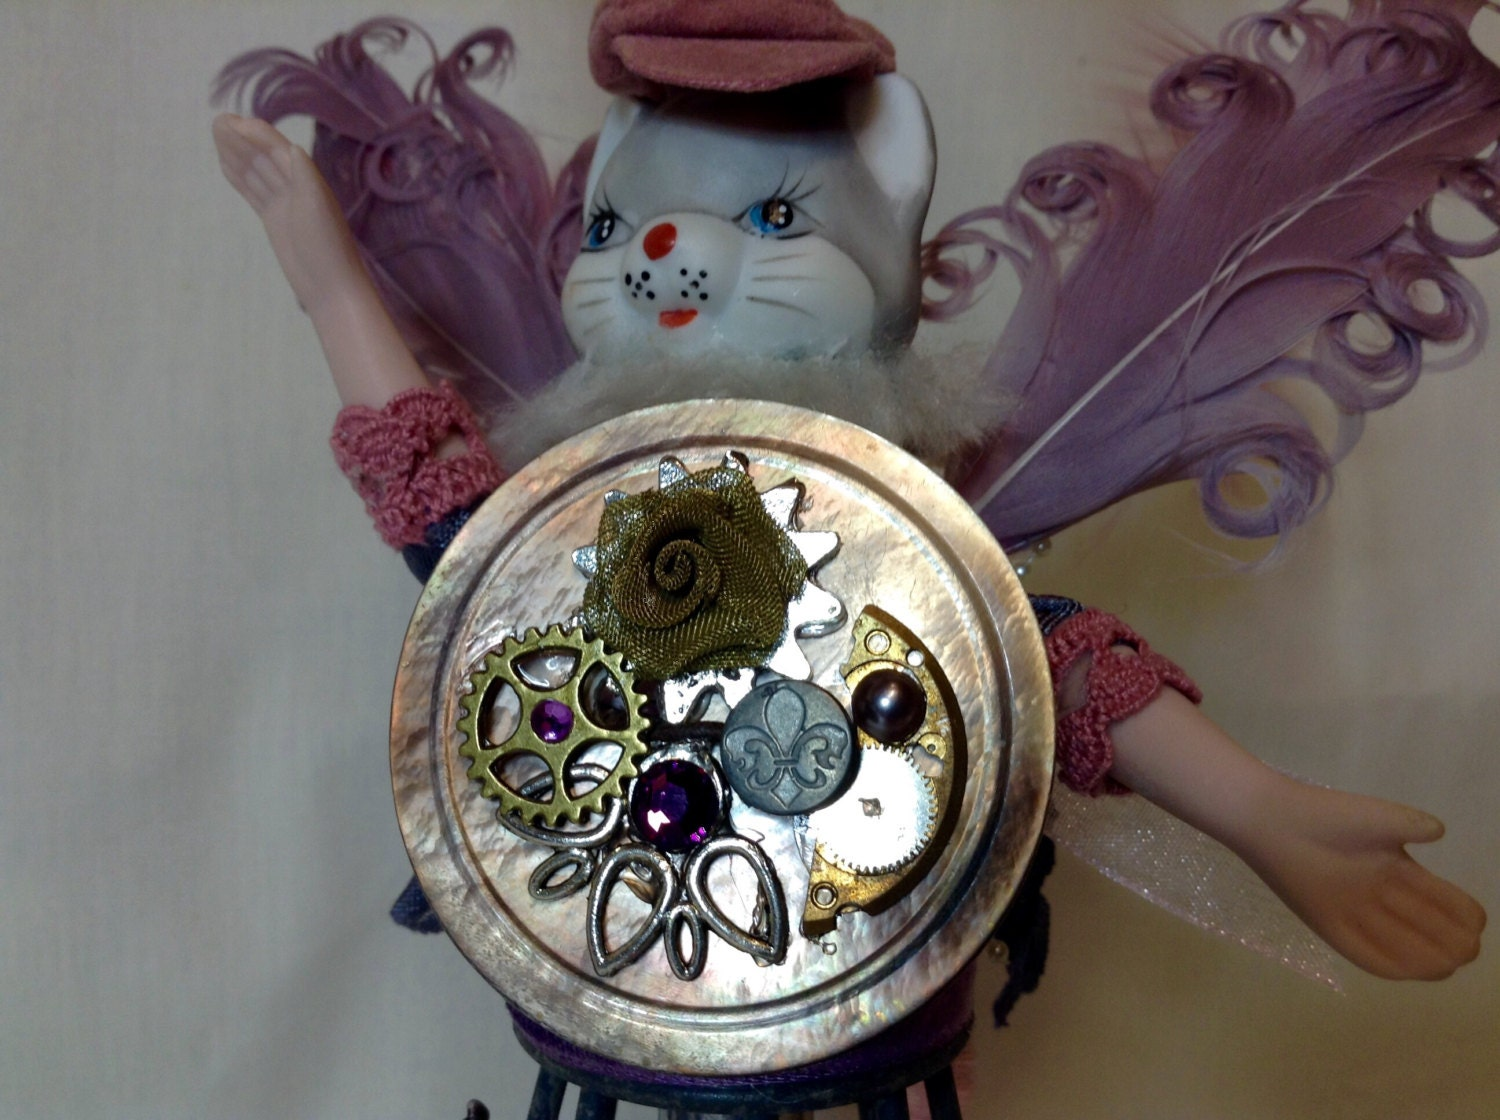 The Cat's Meow! An angelic marriage of steampunk and mixed media art! Created on a good day, with a great glass of red wine! steampunk buy now online